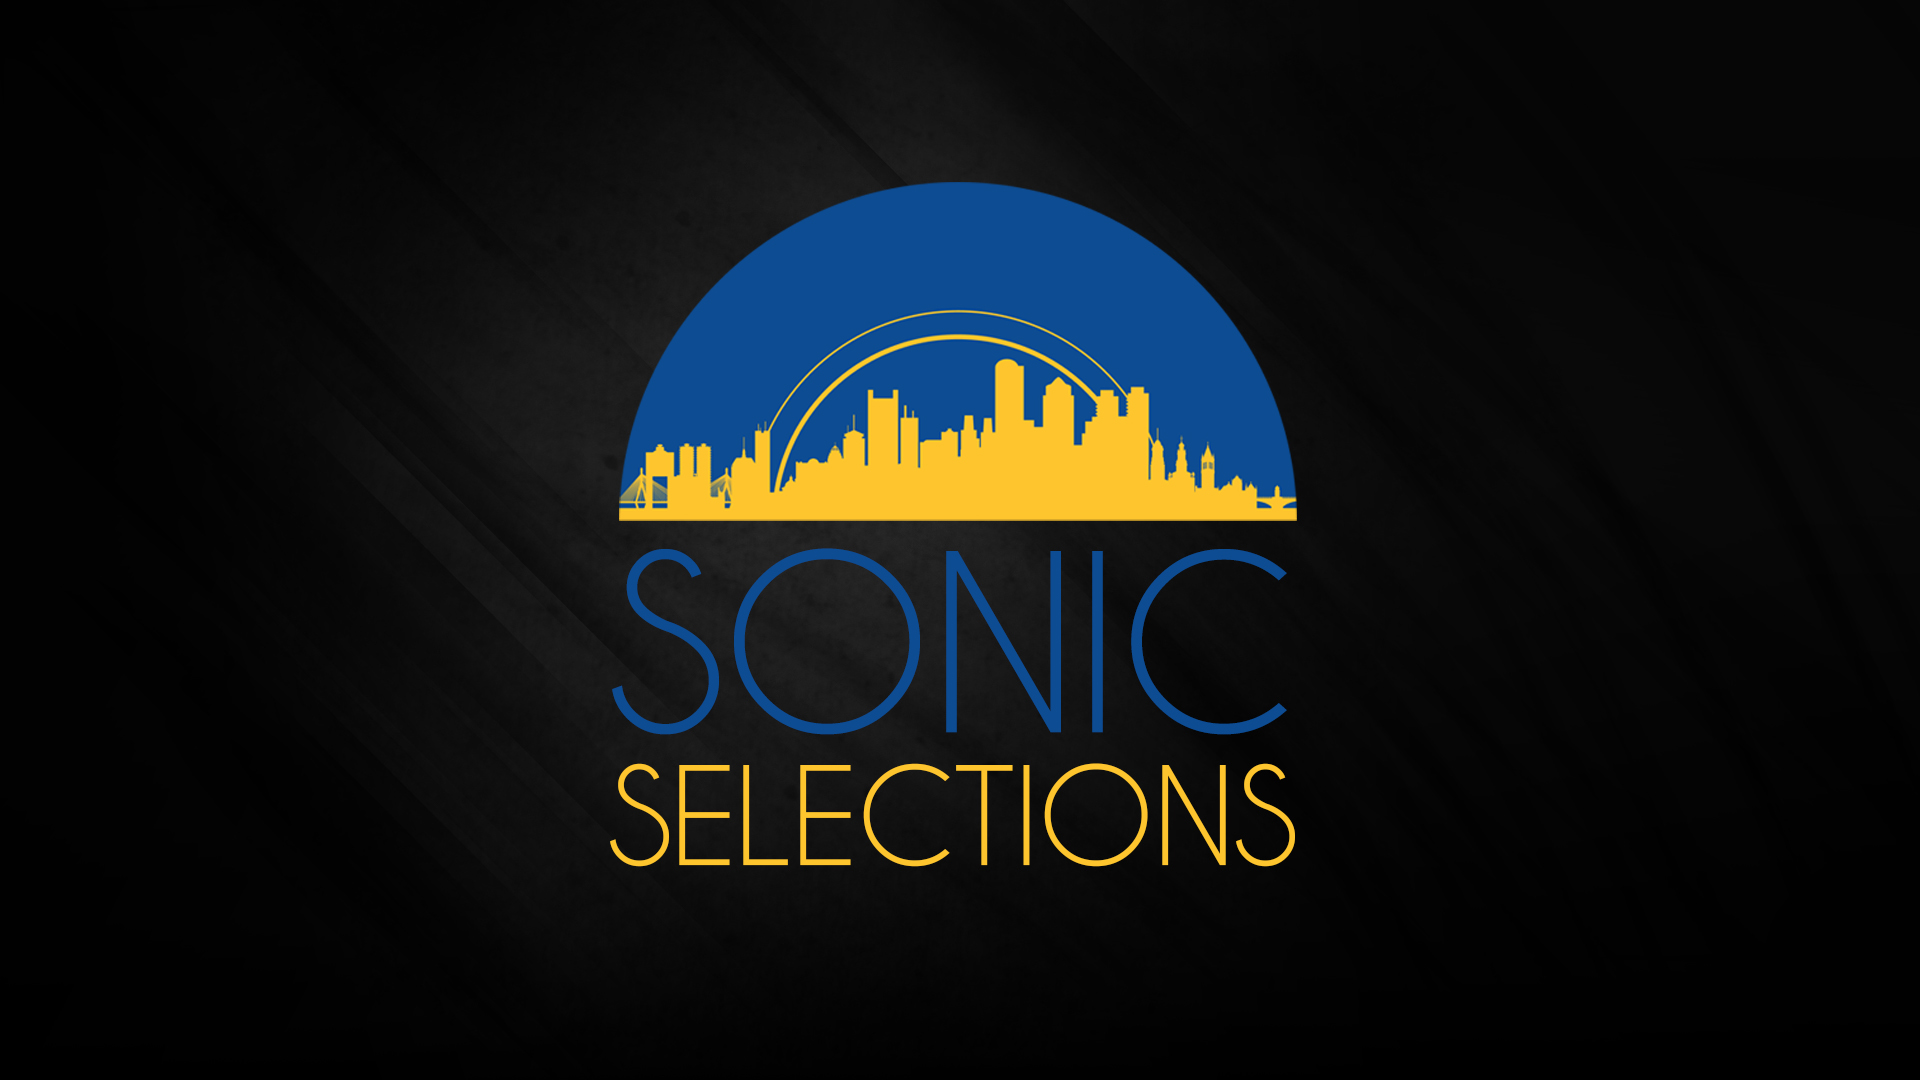 Sonic-Selections-Main